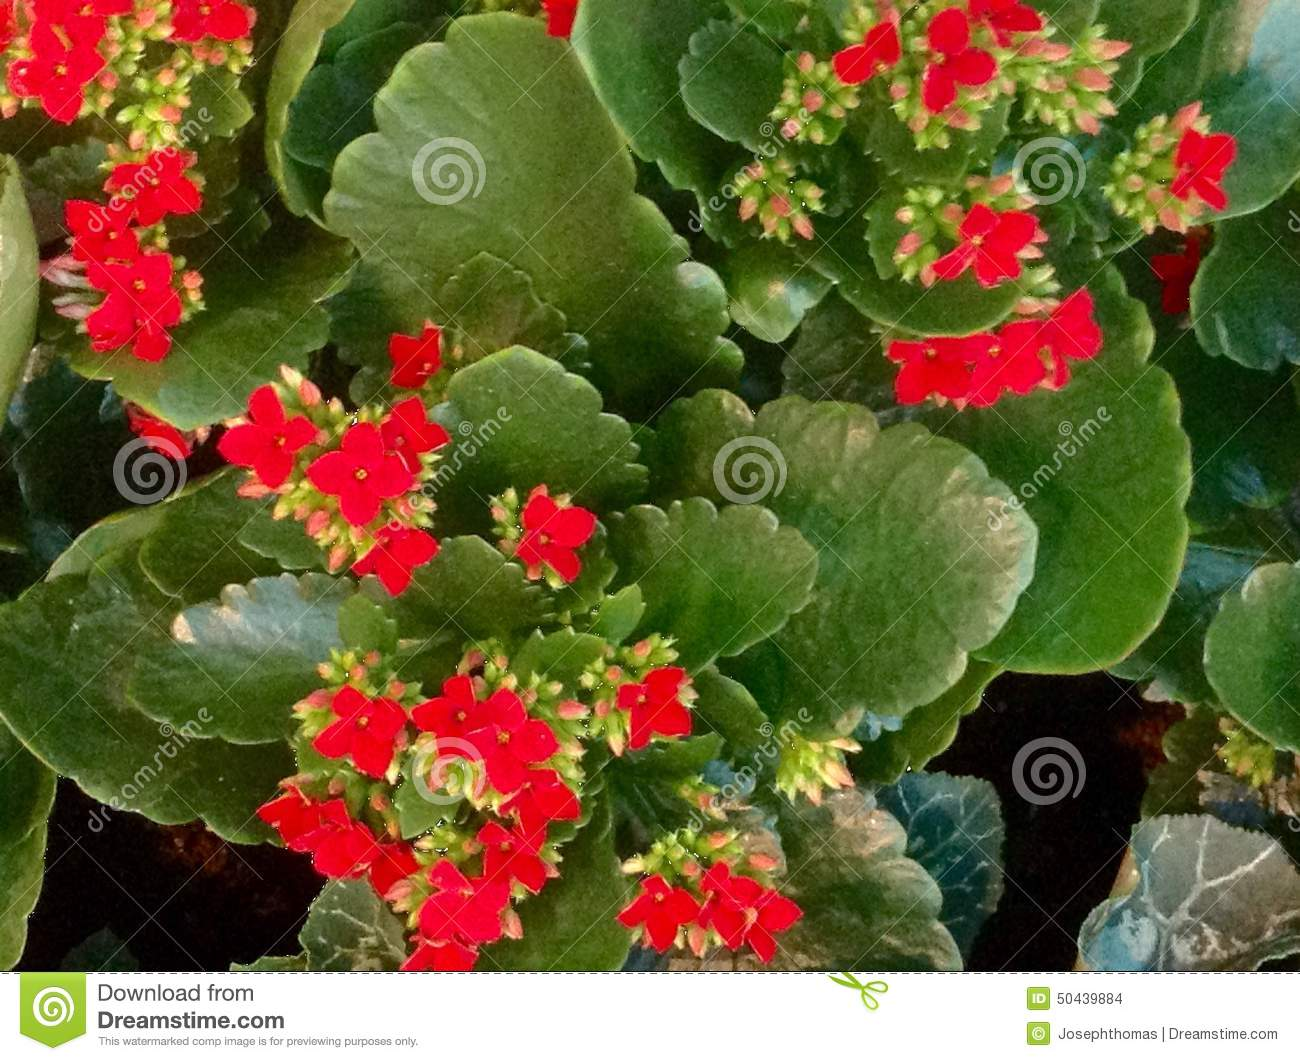 Pictures Of Flowering House Plants Kalanchoe Red Flower Texture Stock Photo Image Of Happy